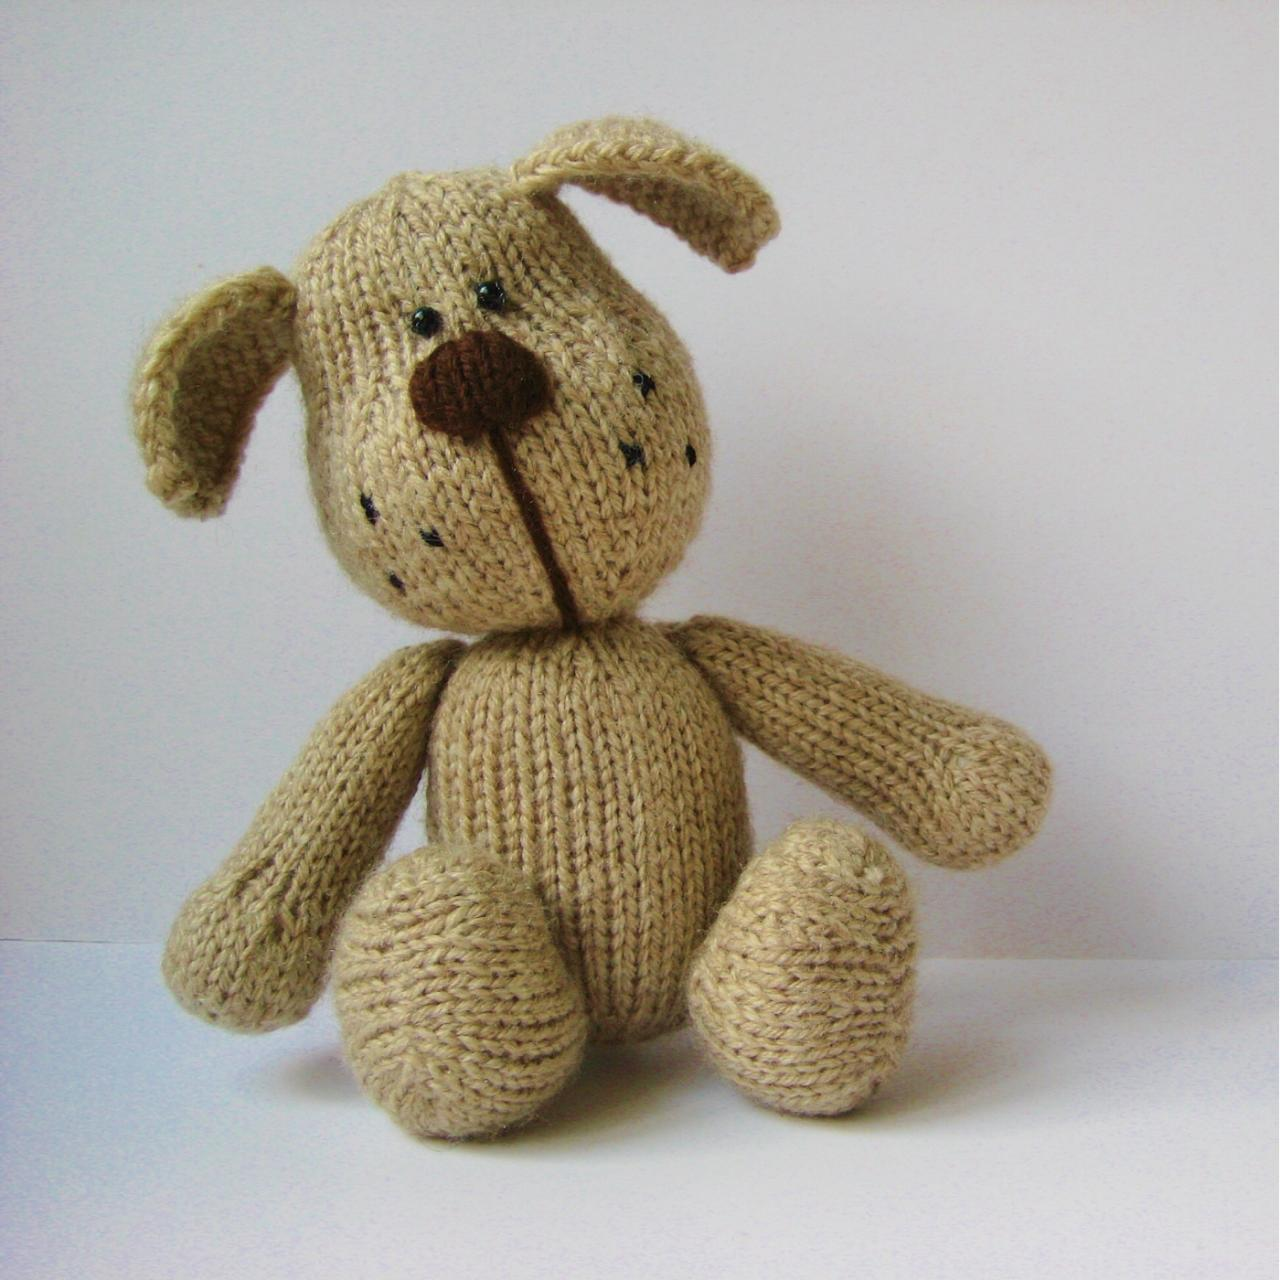 Knitting Patterns Toys : Bernie The Dog Toy Knitting Pattern on Luulla